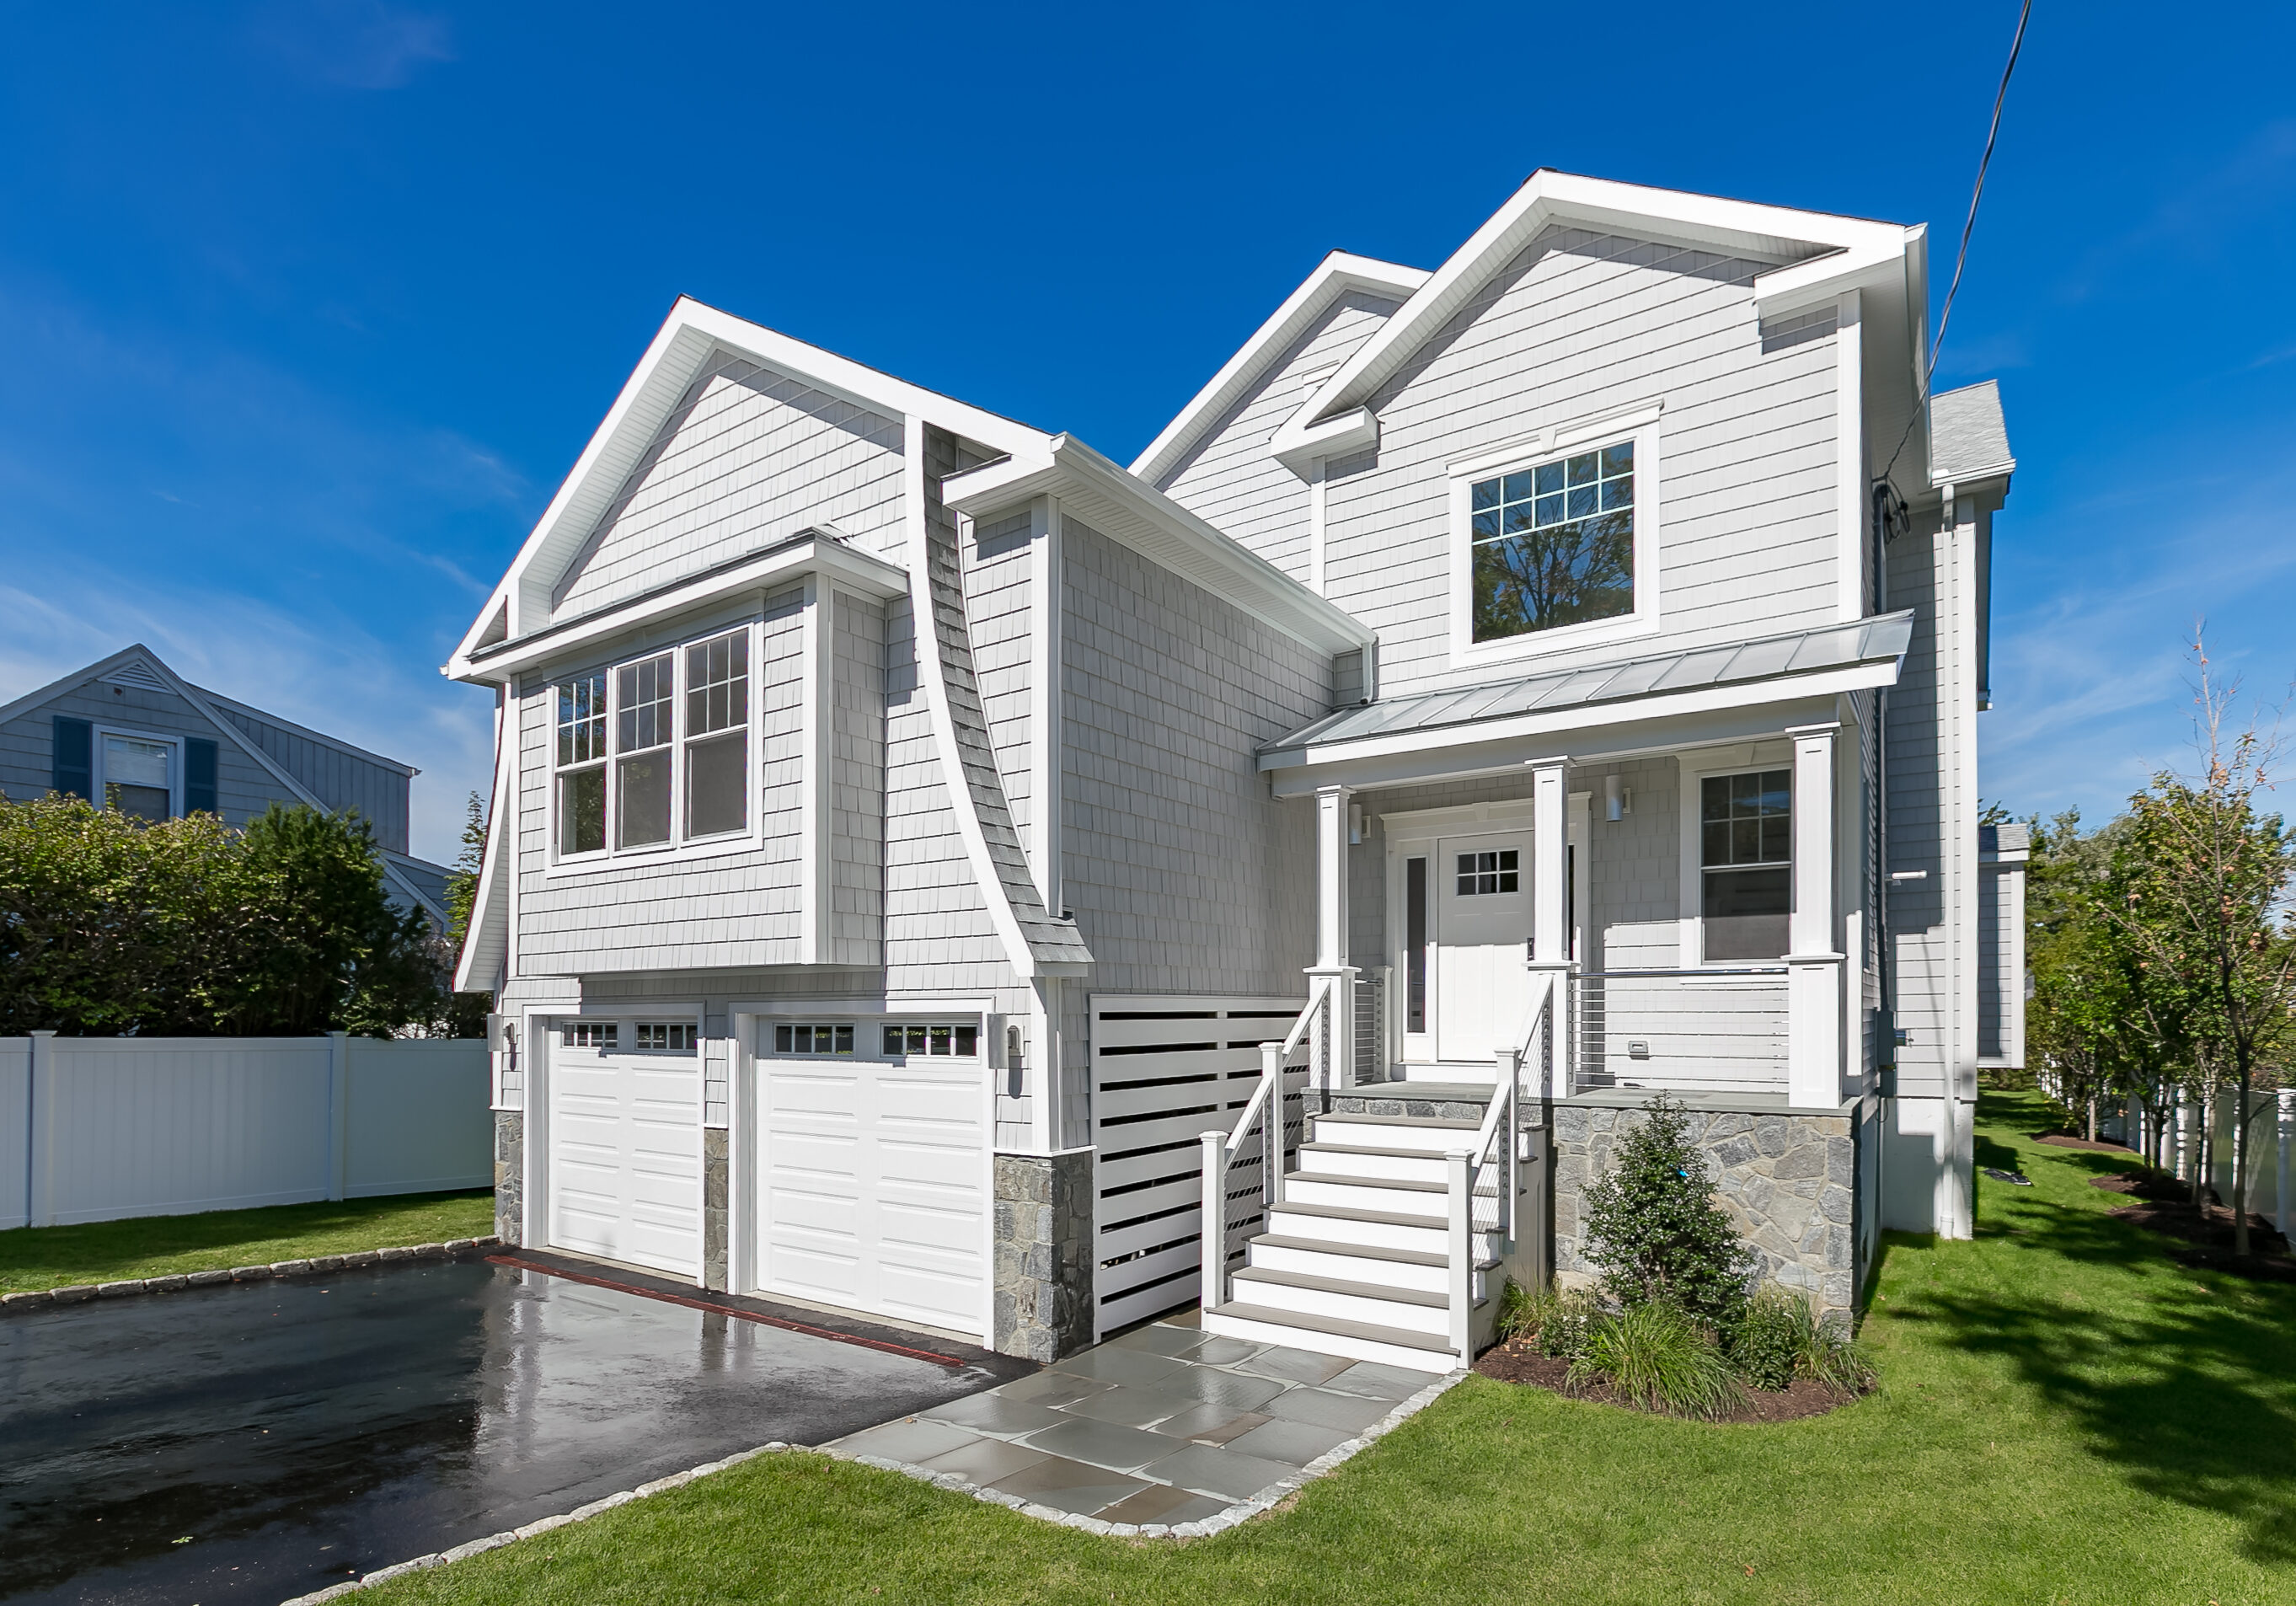 #2 - 52 Gould Manor - A New Generation Healthy Home - Exterior